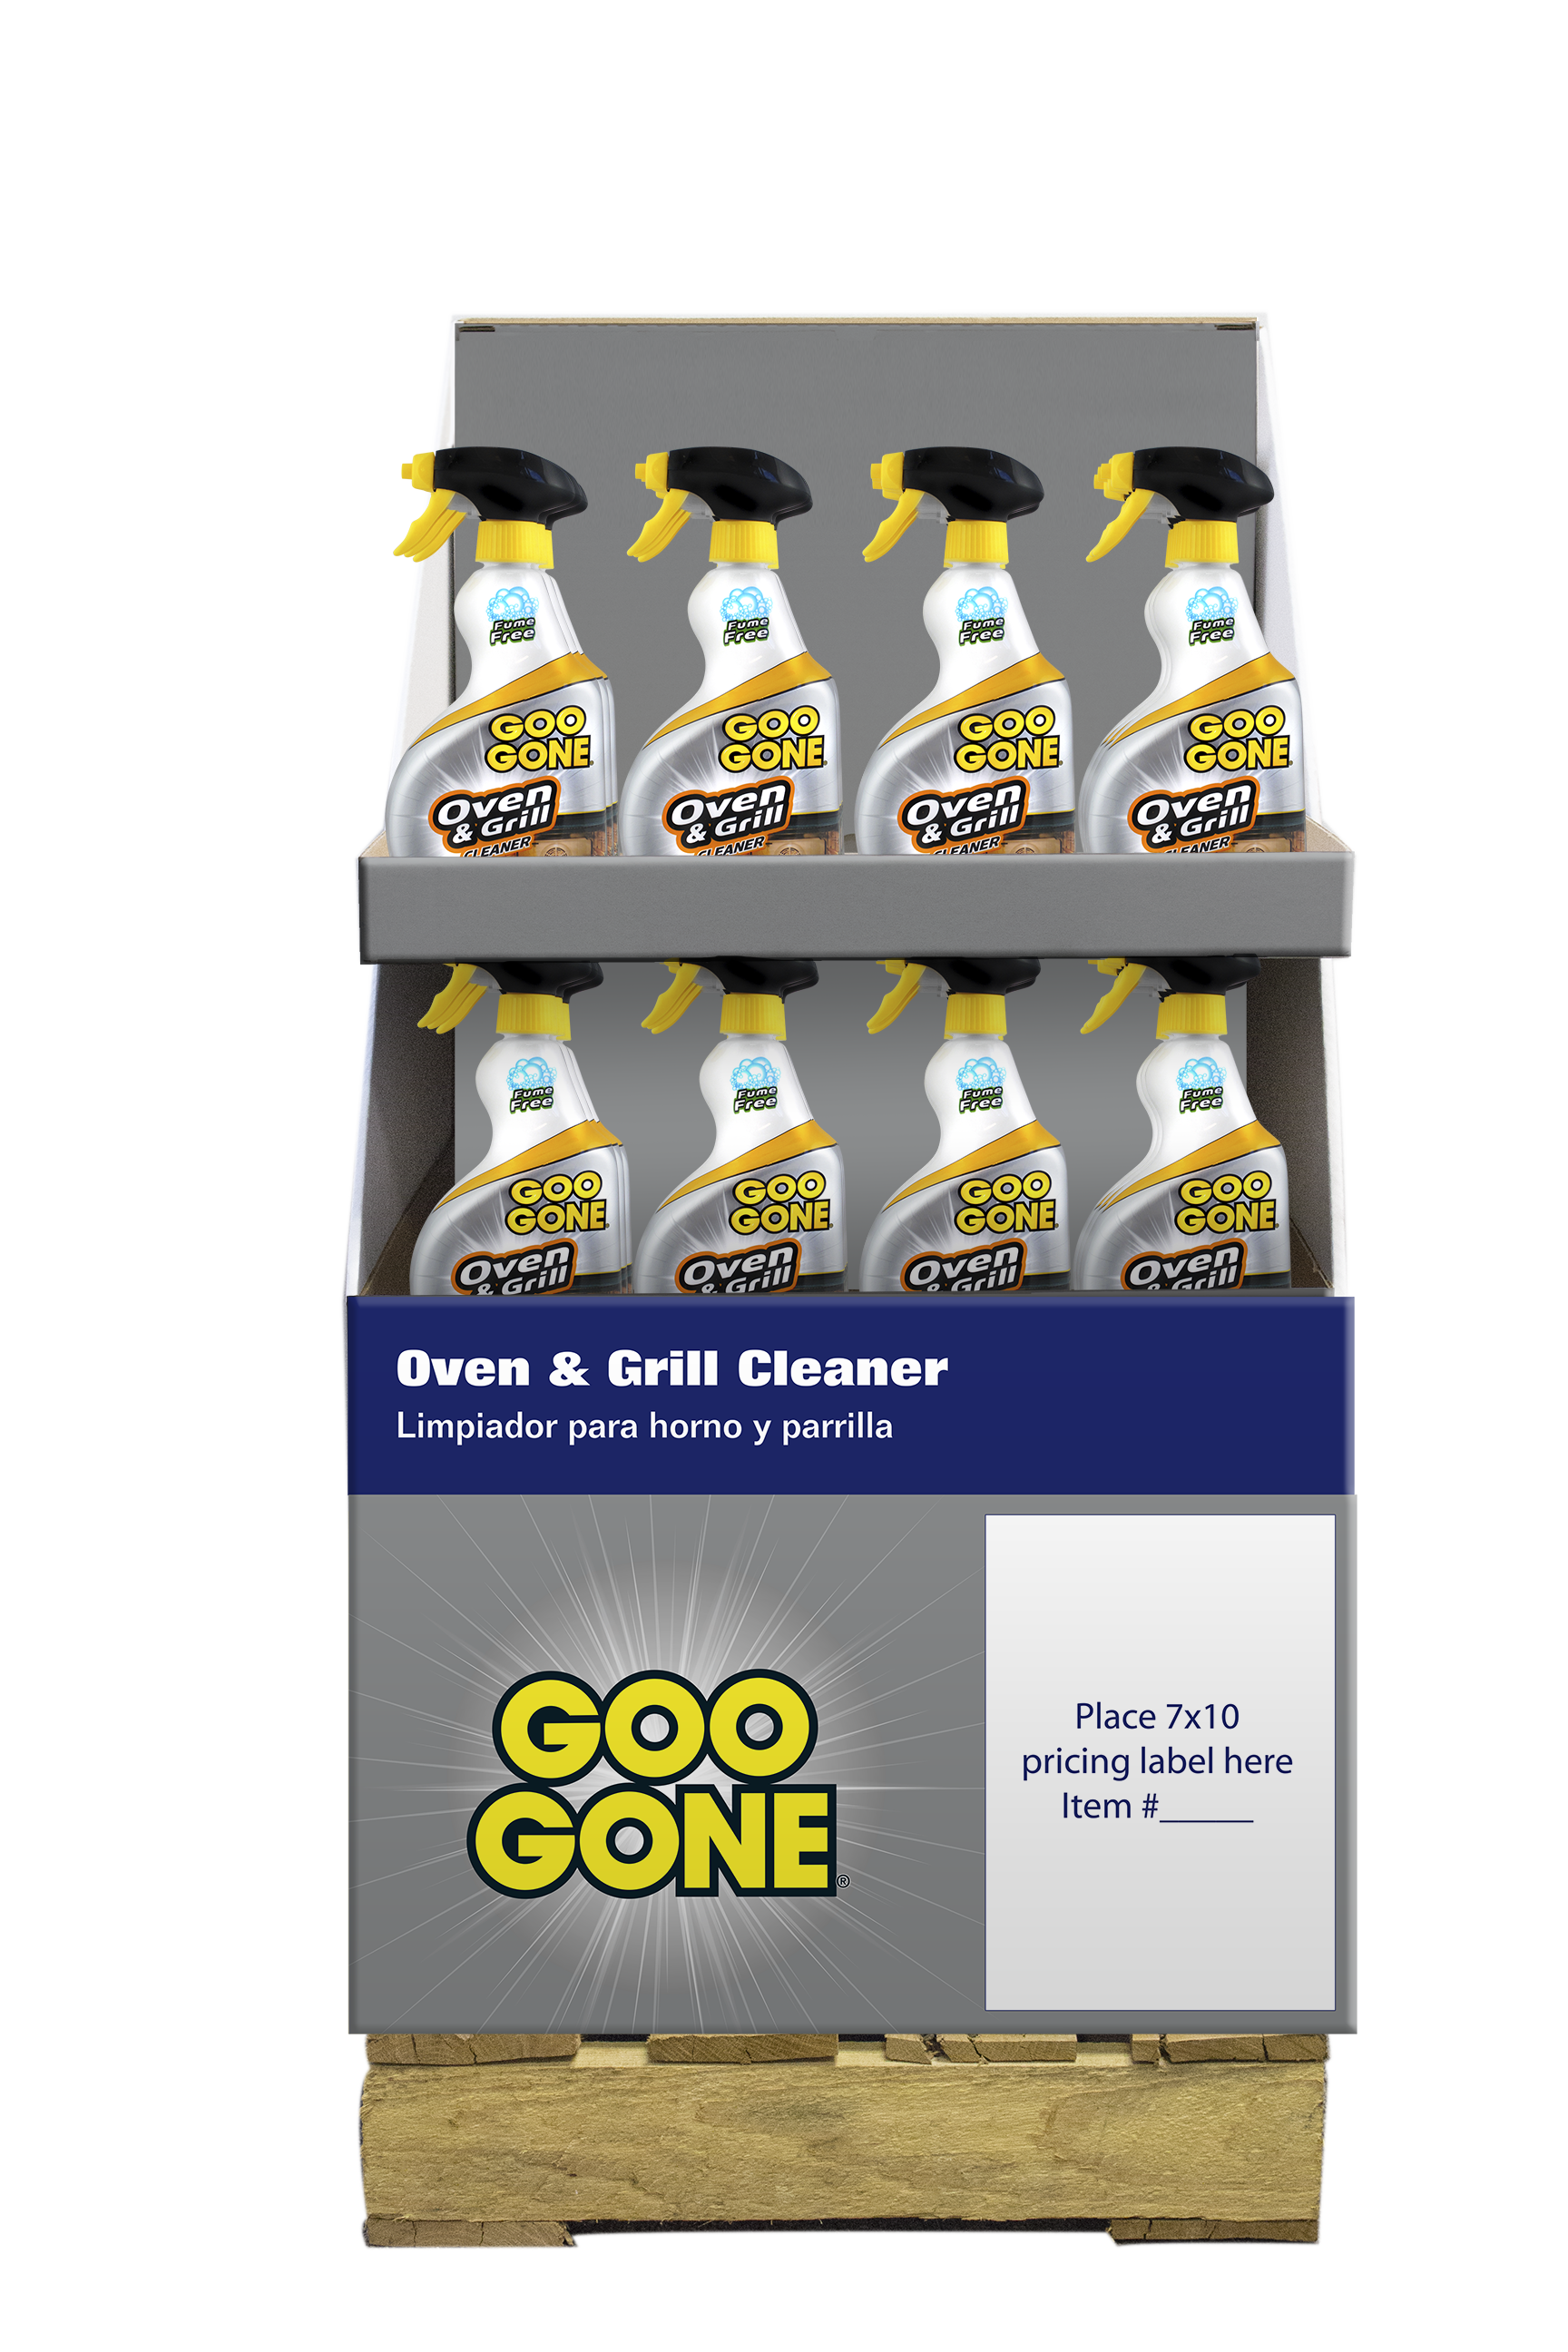 Goo Gone Display